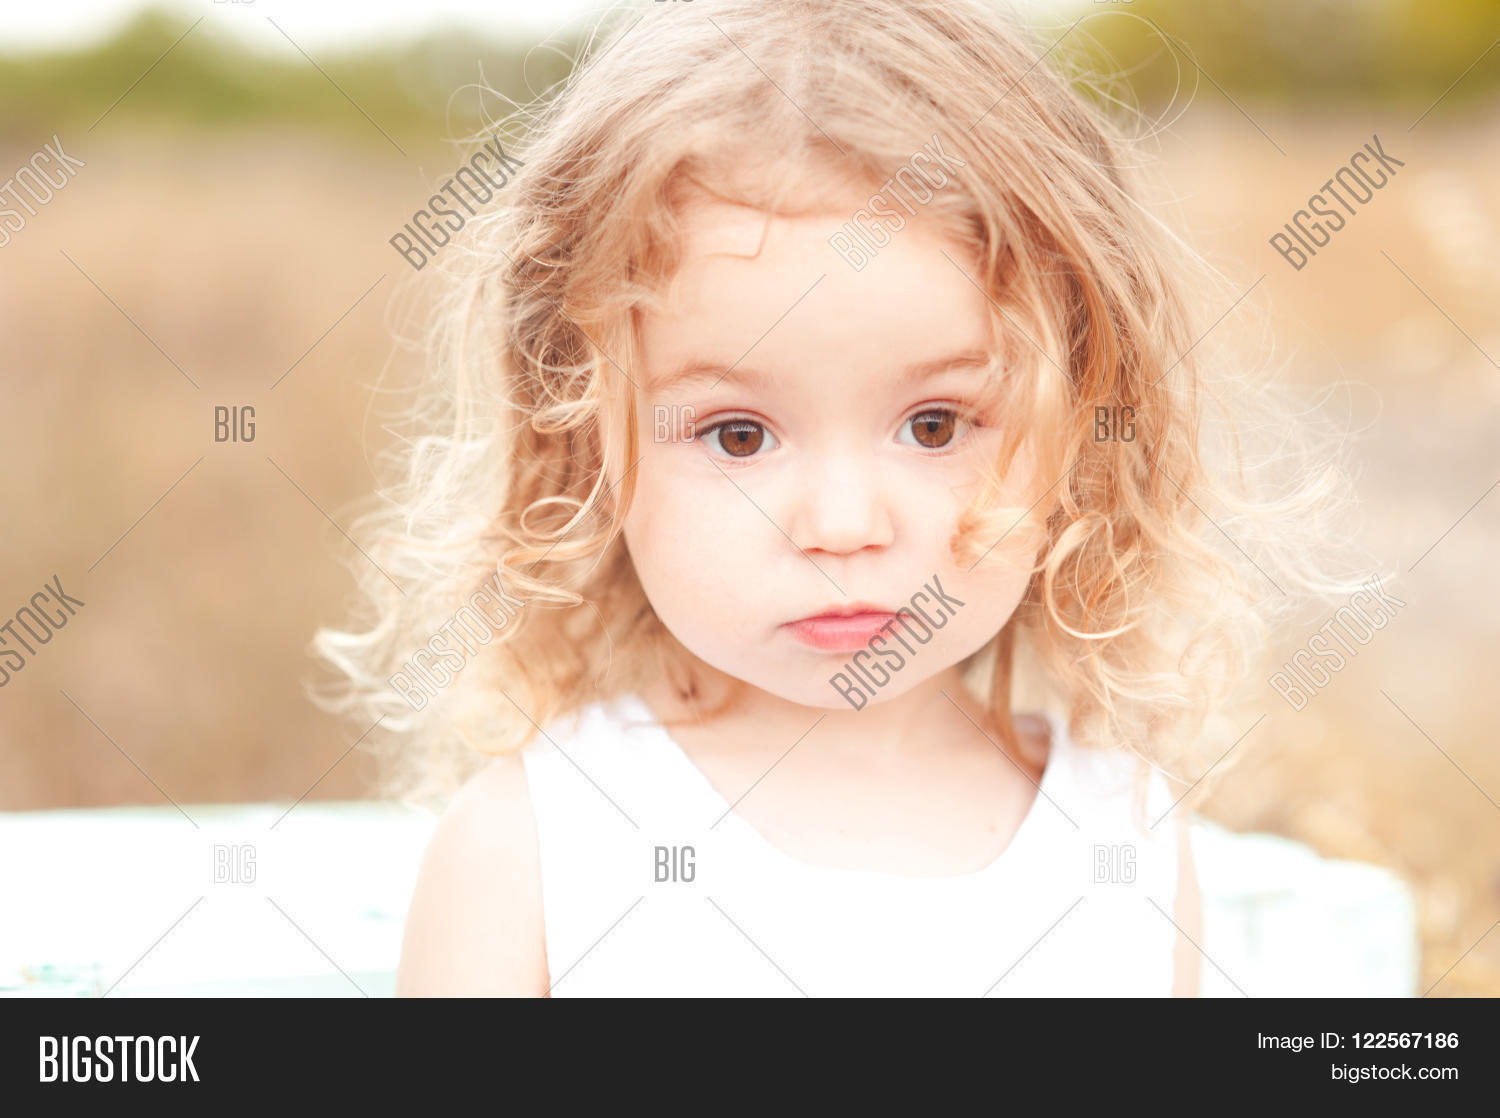 cute baby girl blonde image & photo (free trial) | bigstock